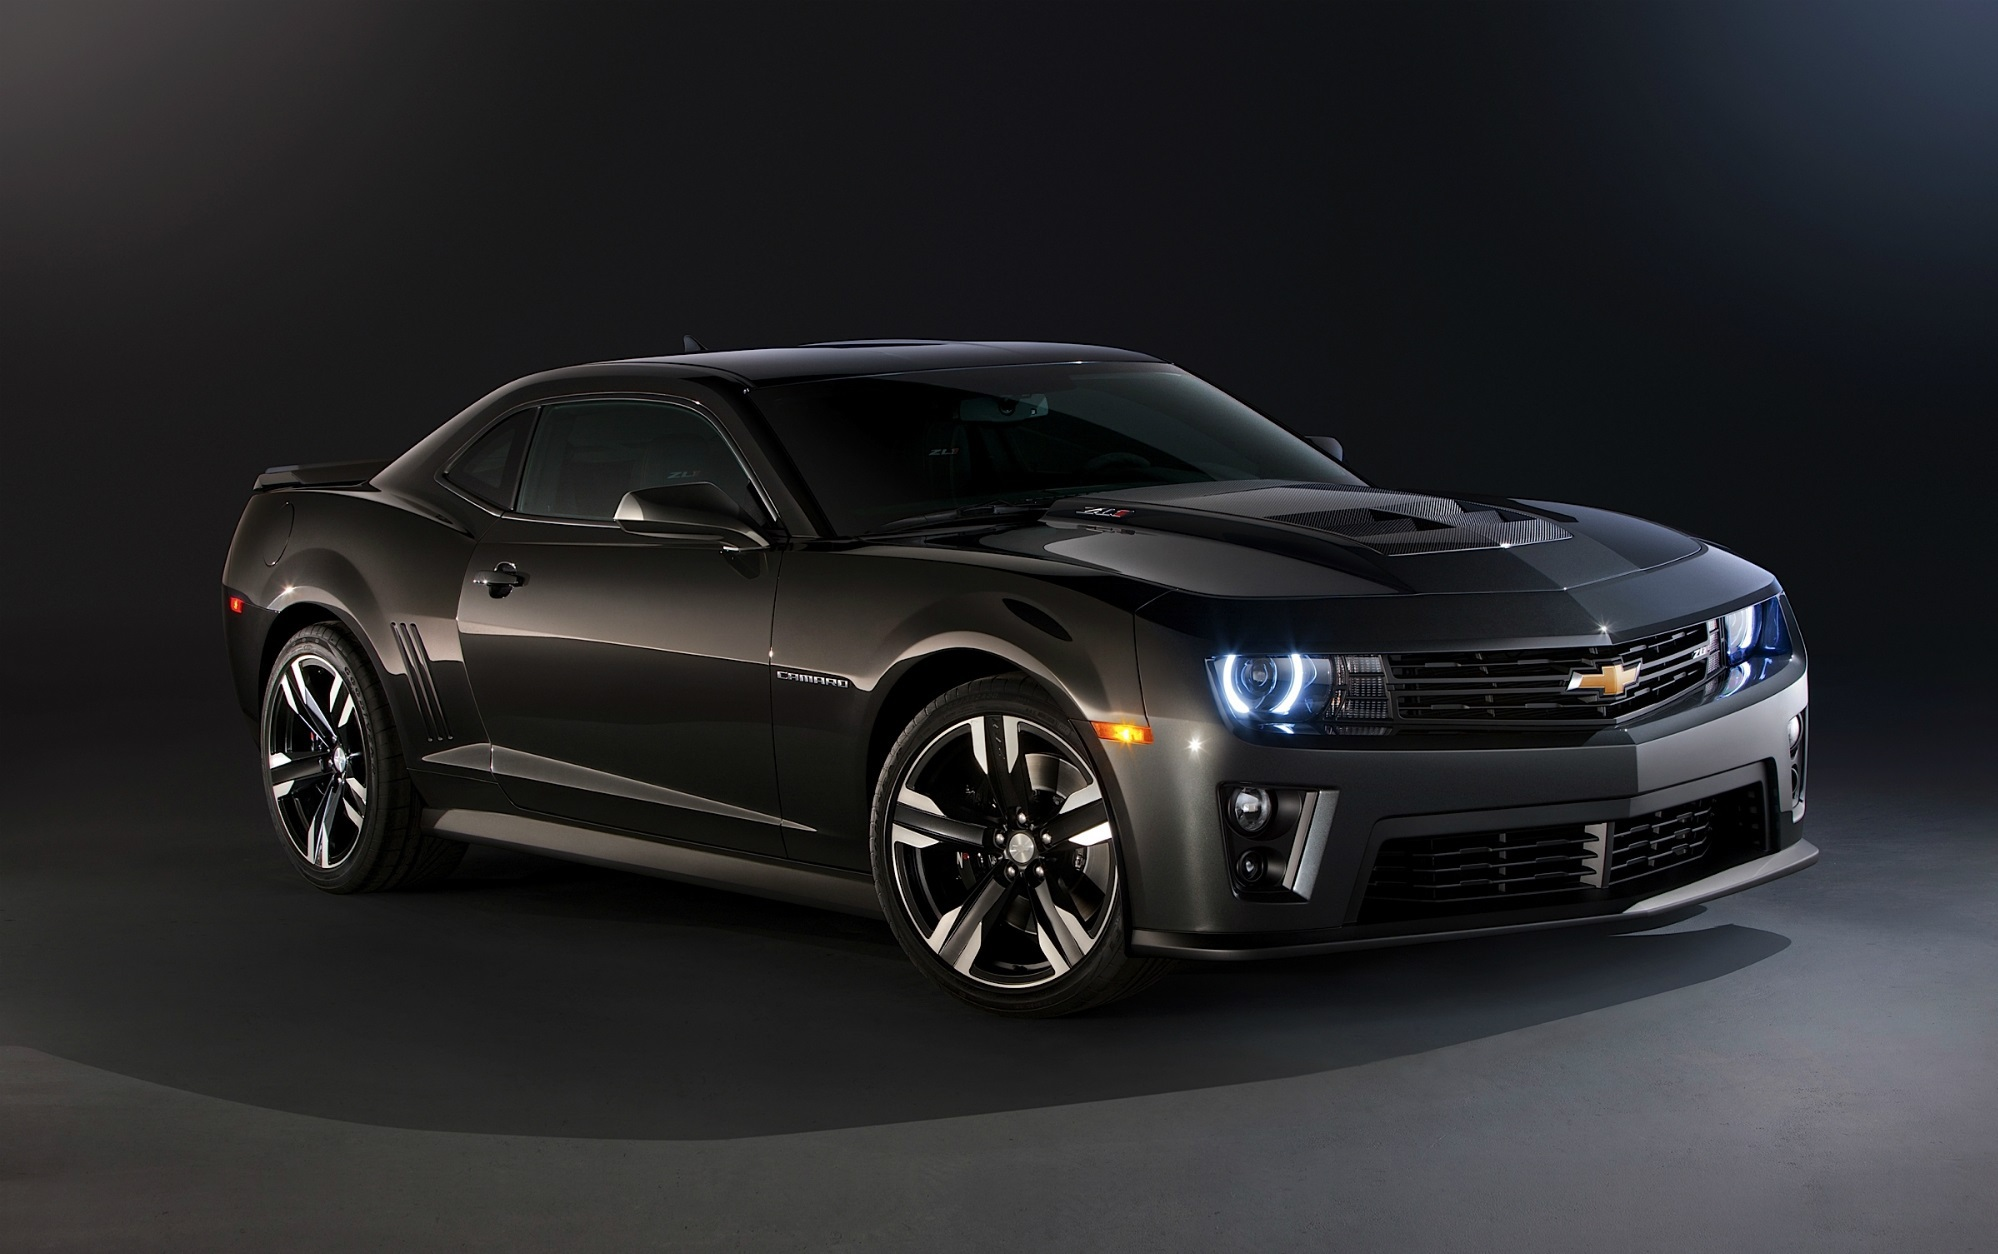 Chevrolet Camaro High Definition Wallpapers